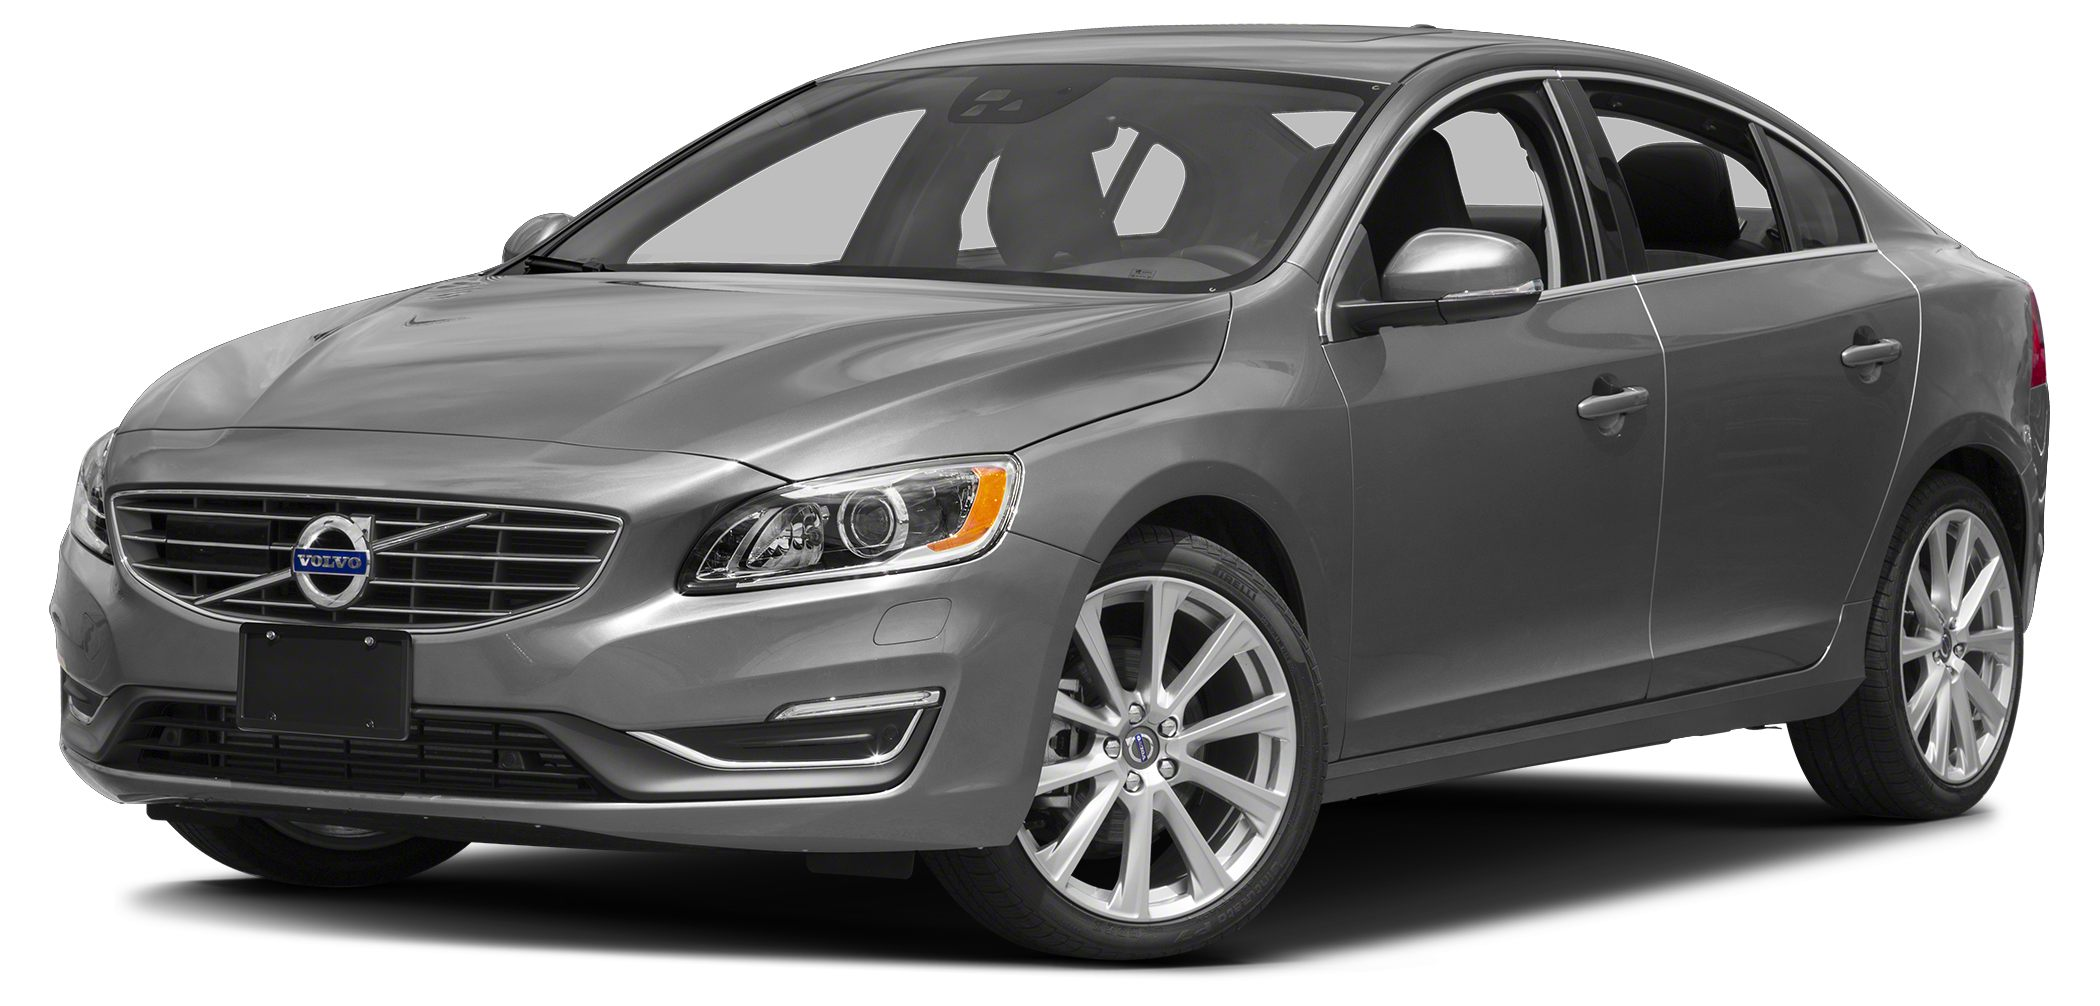 2016 Volvo S60 Inscription T5 Drive-E Platinum  LOW MILES  ONE OWNER  LOADED  Volvo Certif